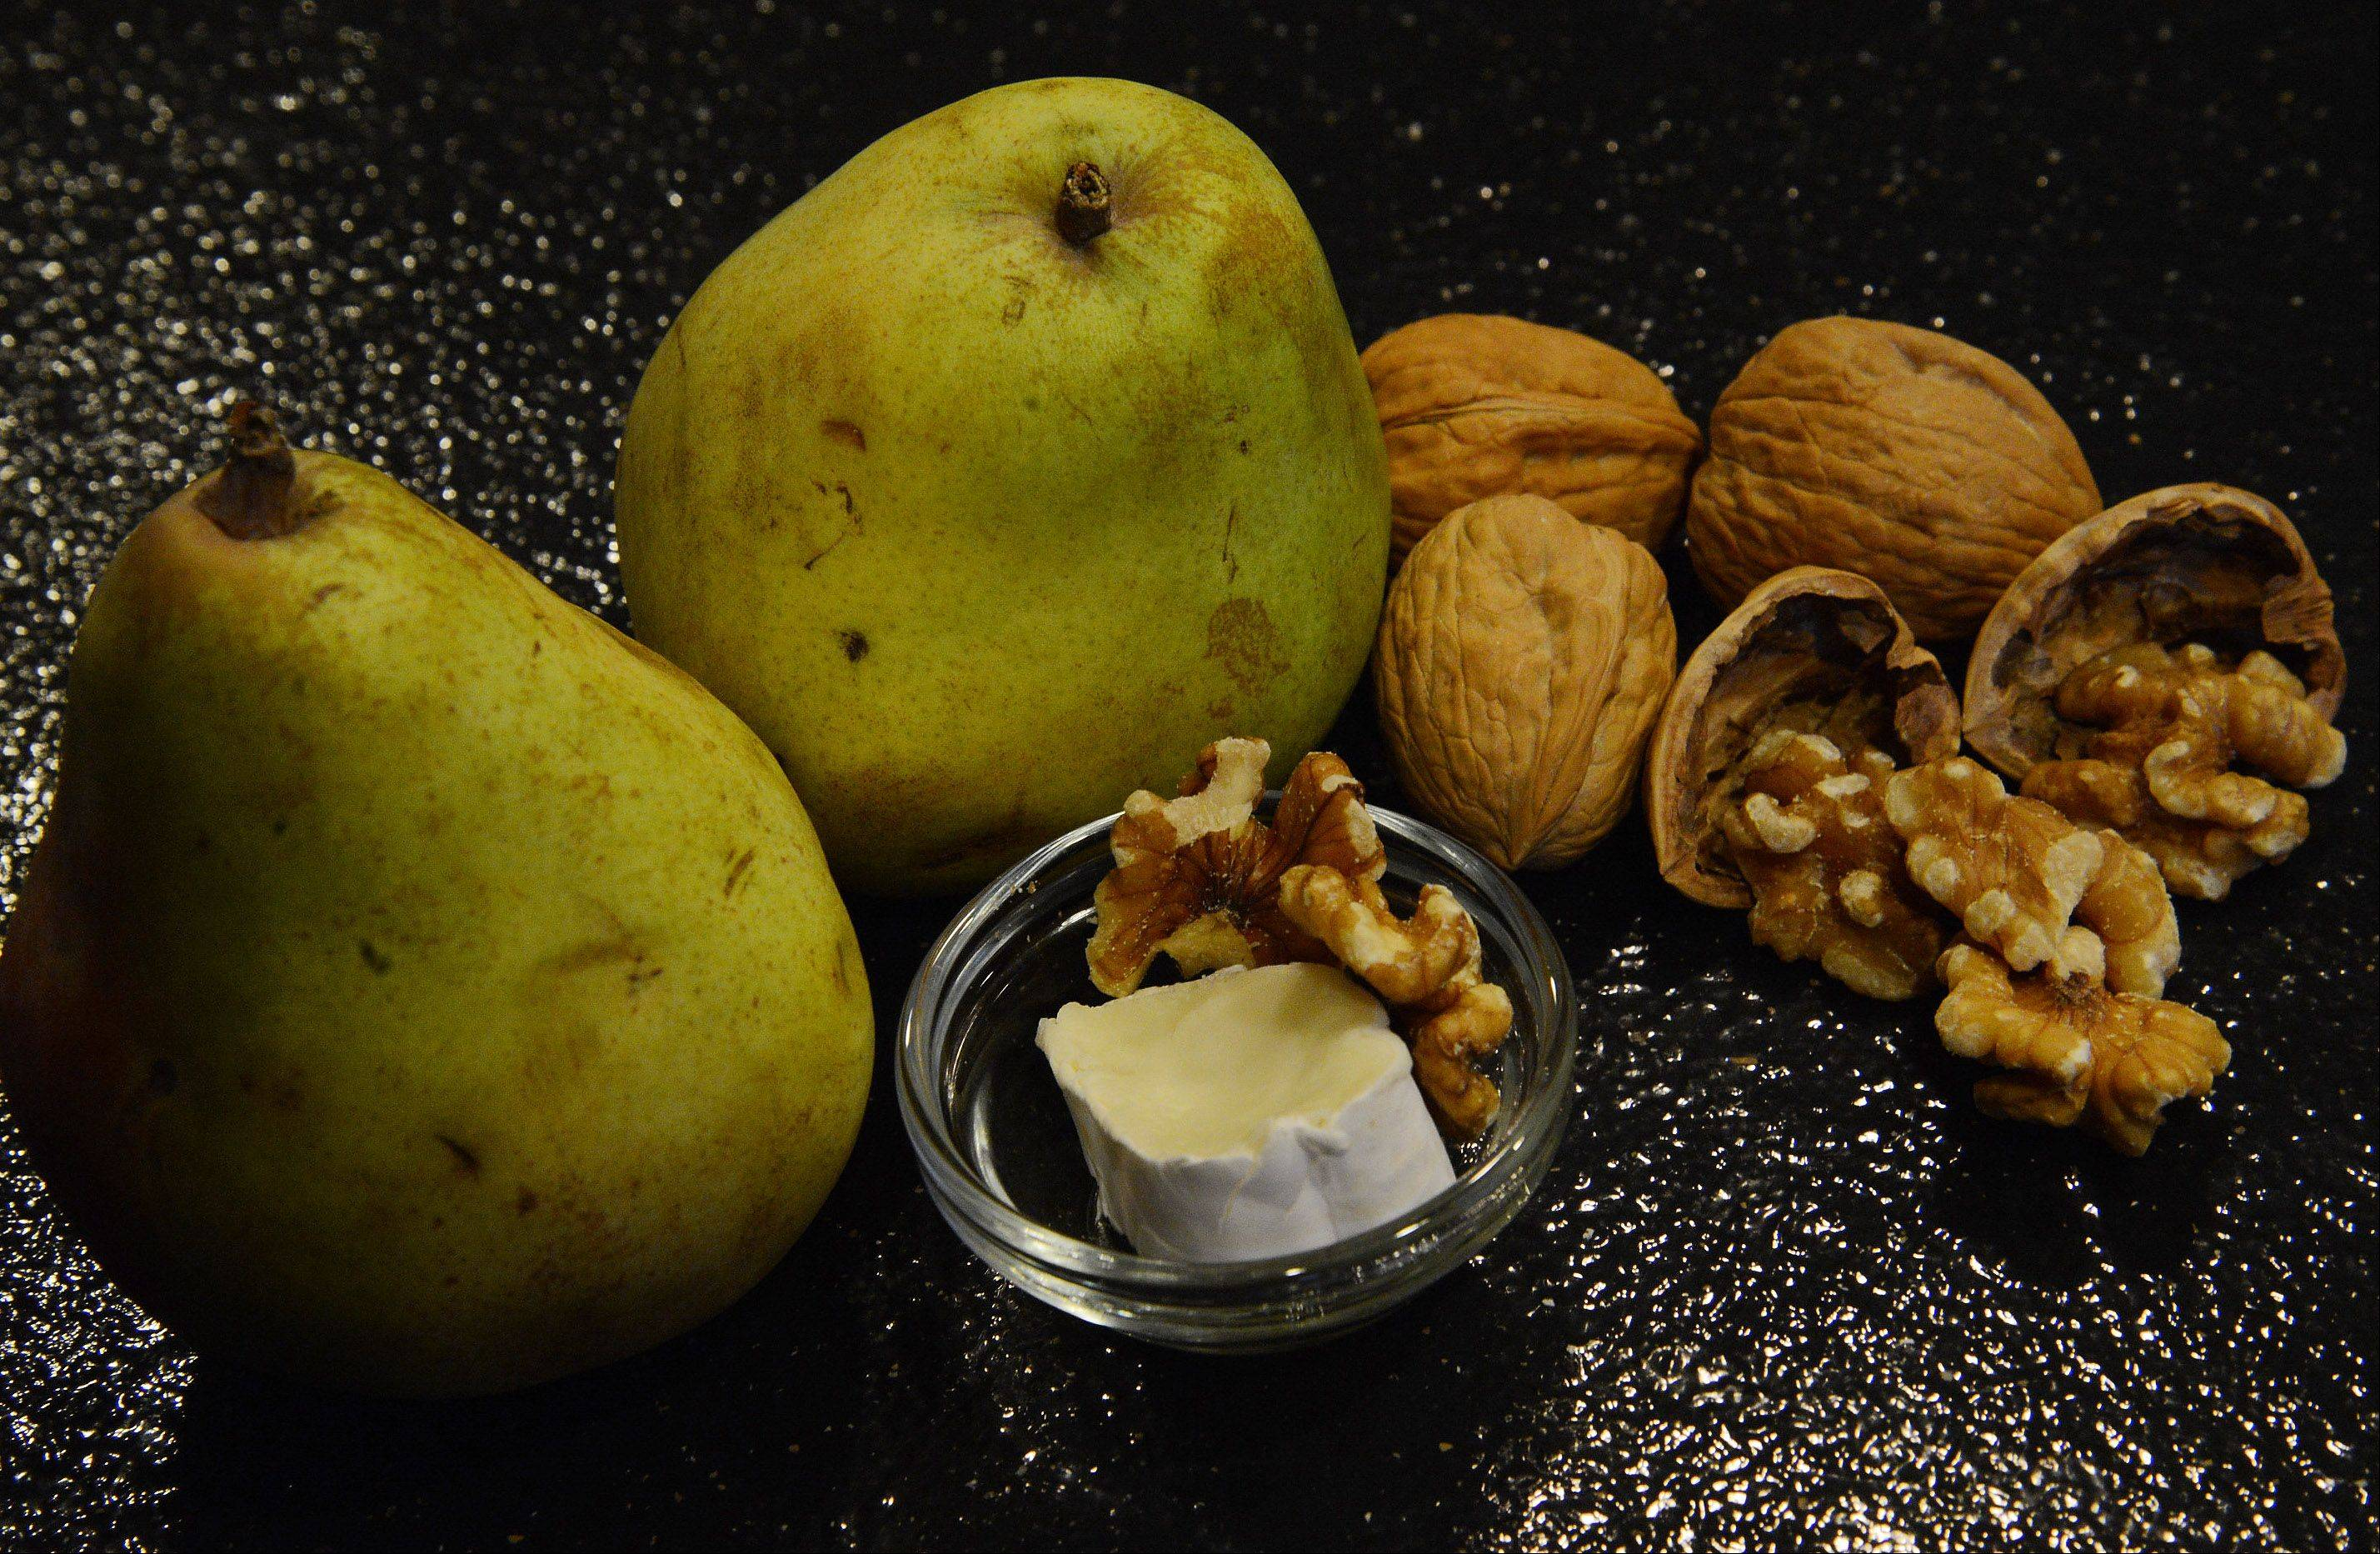 Pears go well with walnuts and brie.